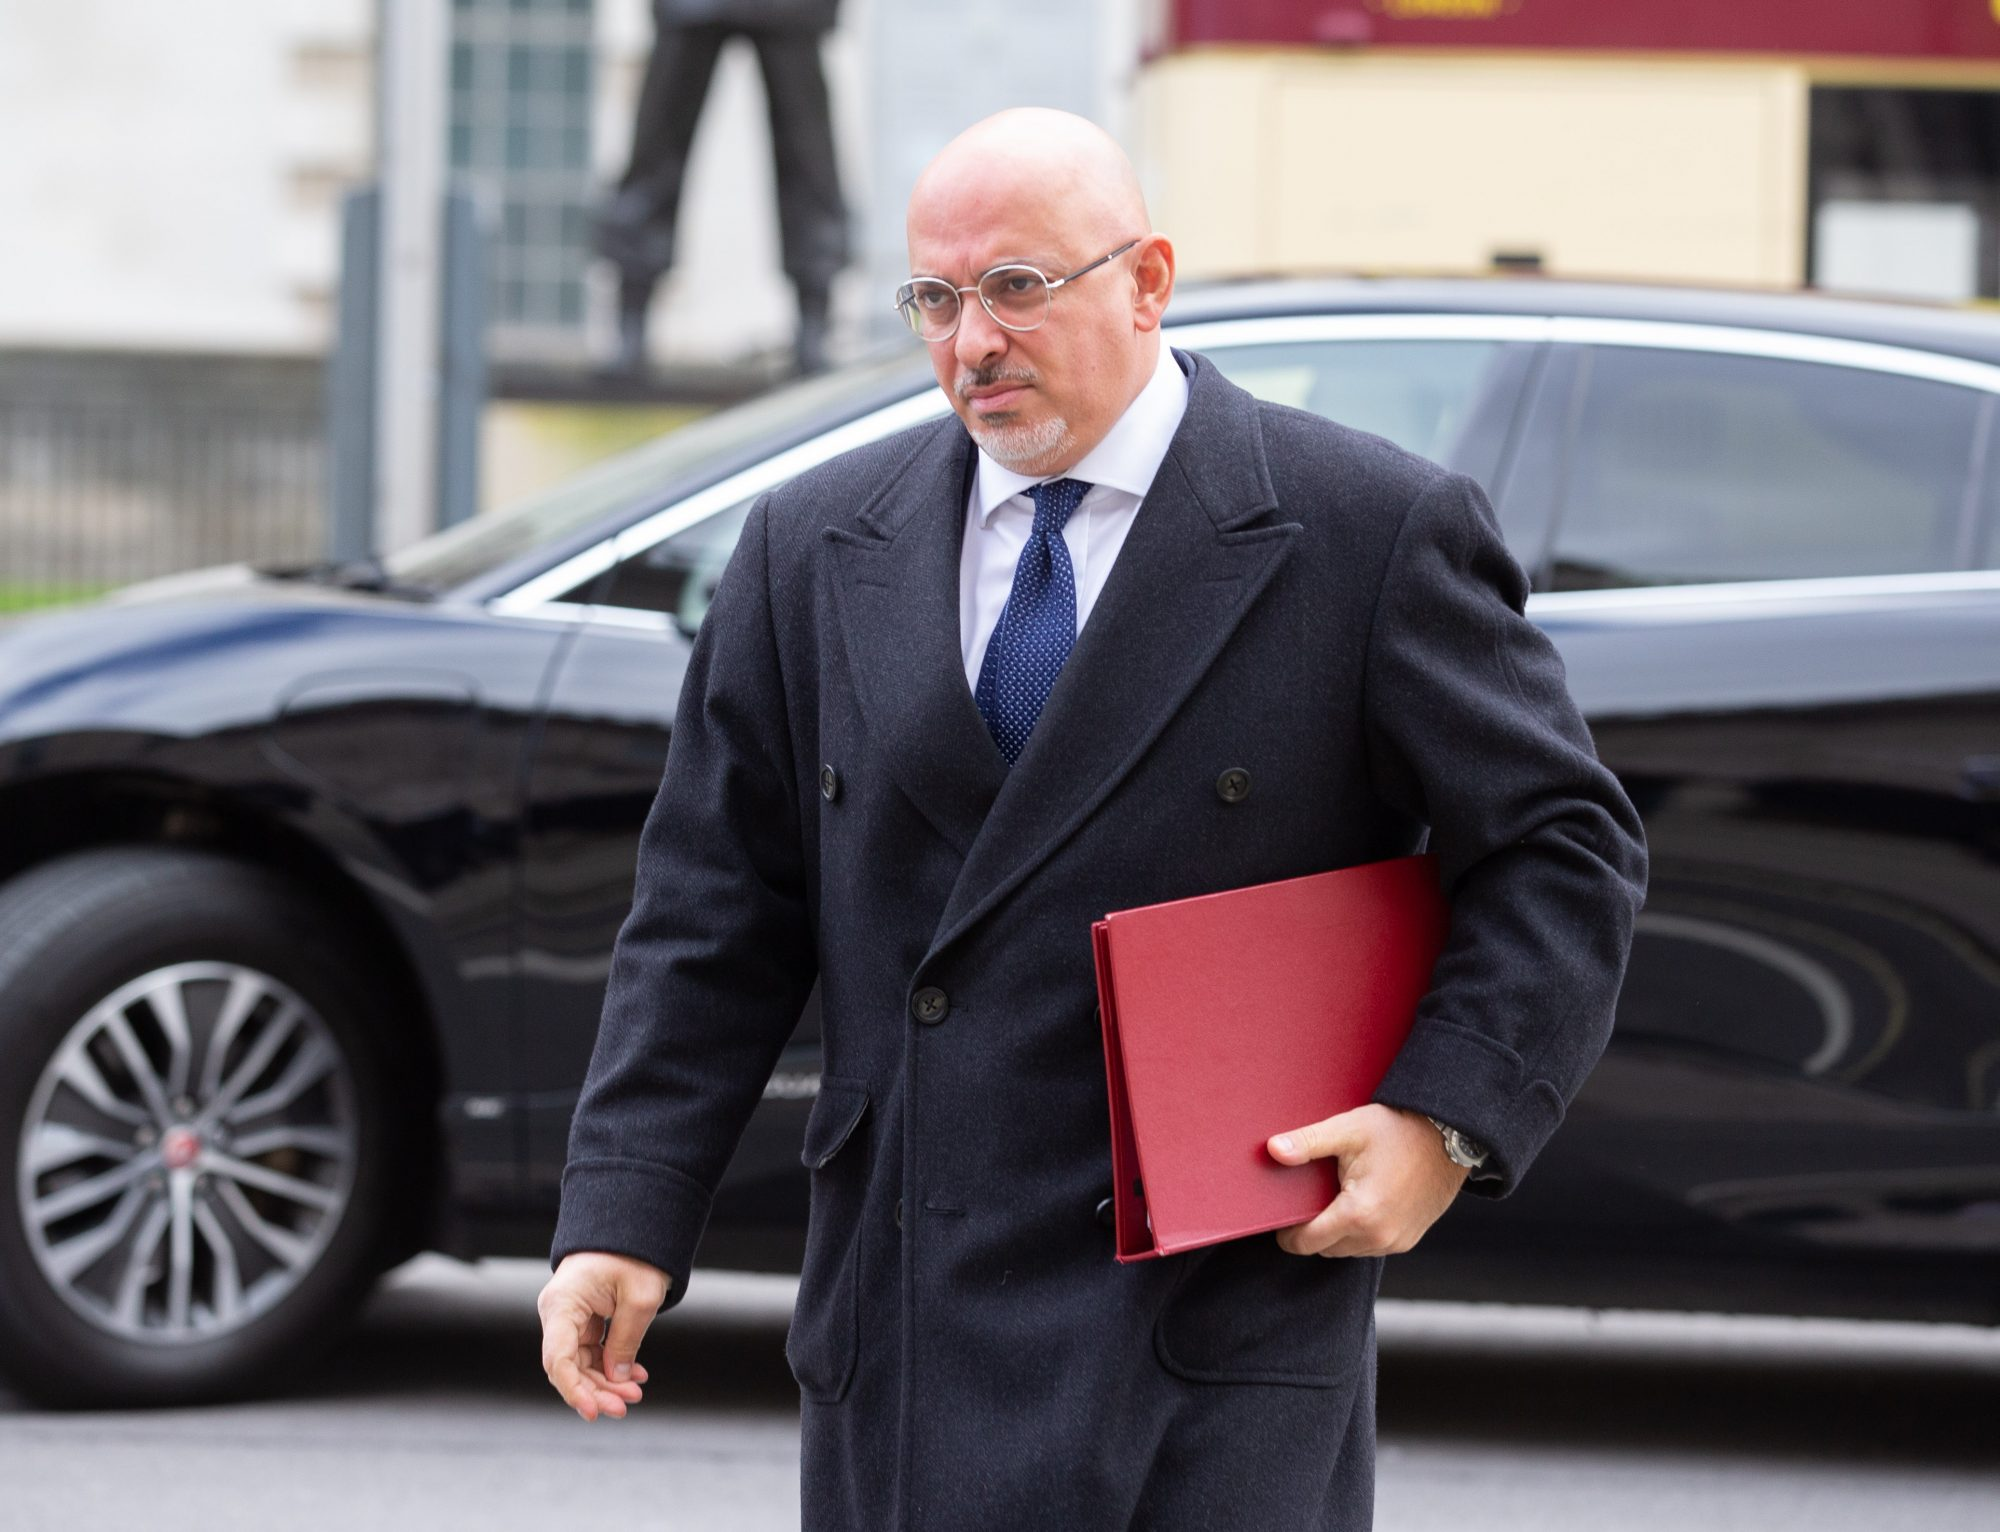 Government appoints Nadhim Zahawi as vaccines minister - channel 4